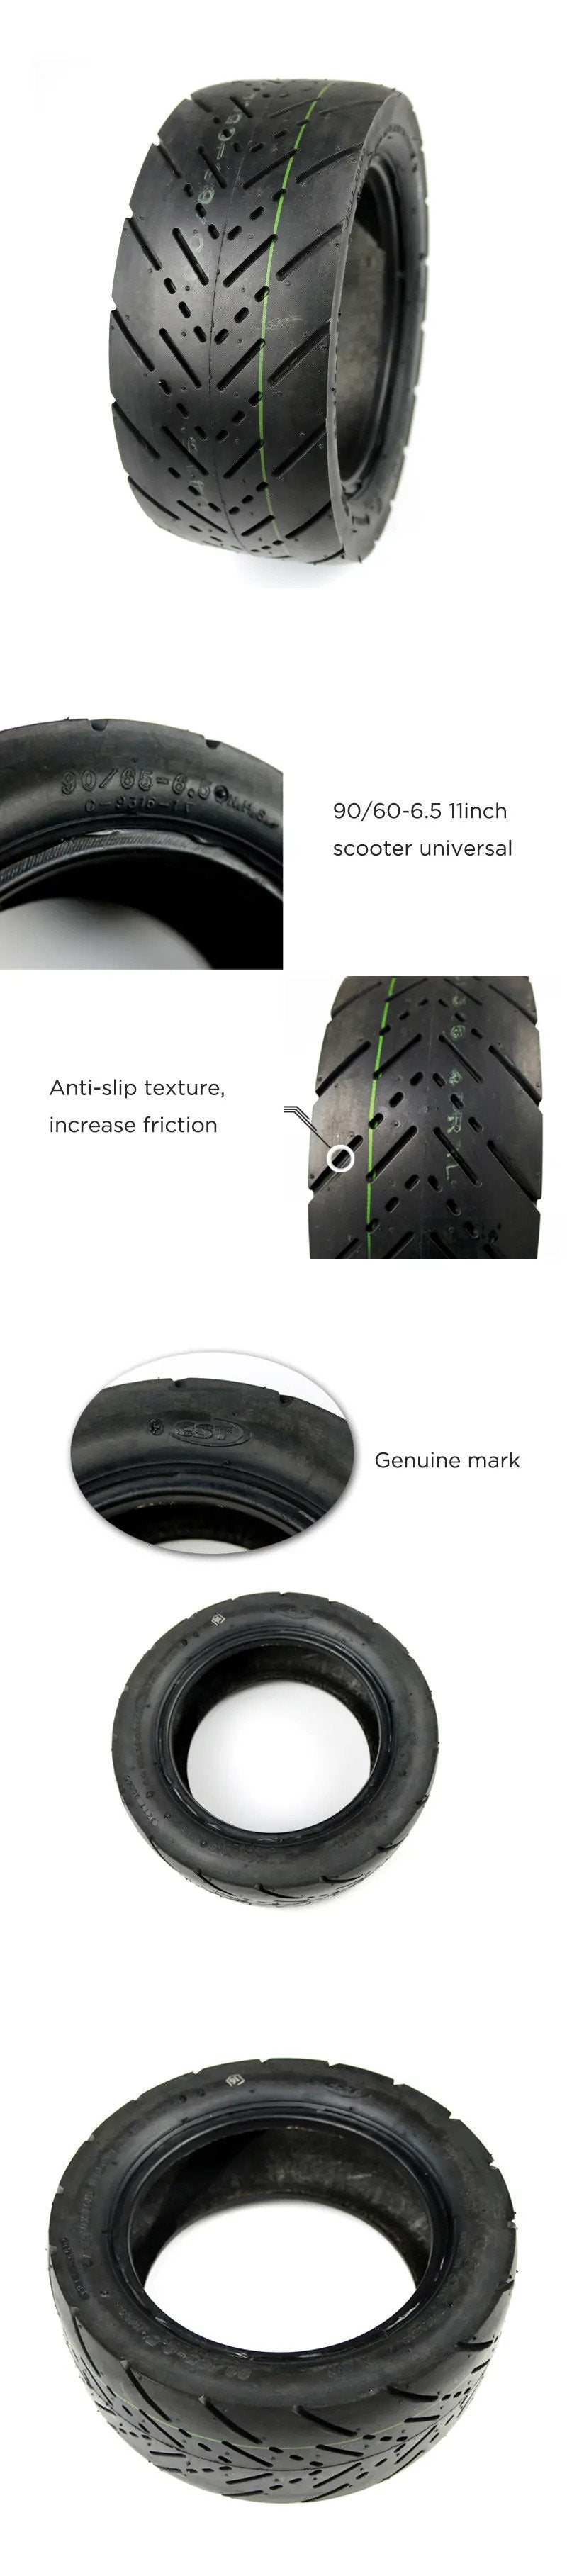 CST 11-inch 9065-6.5 Tubeless Tyre